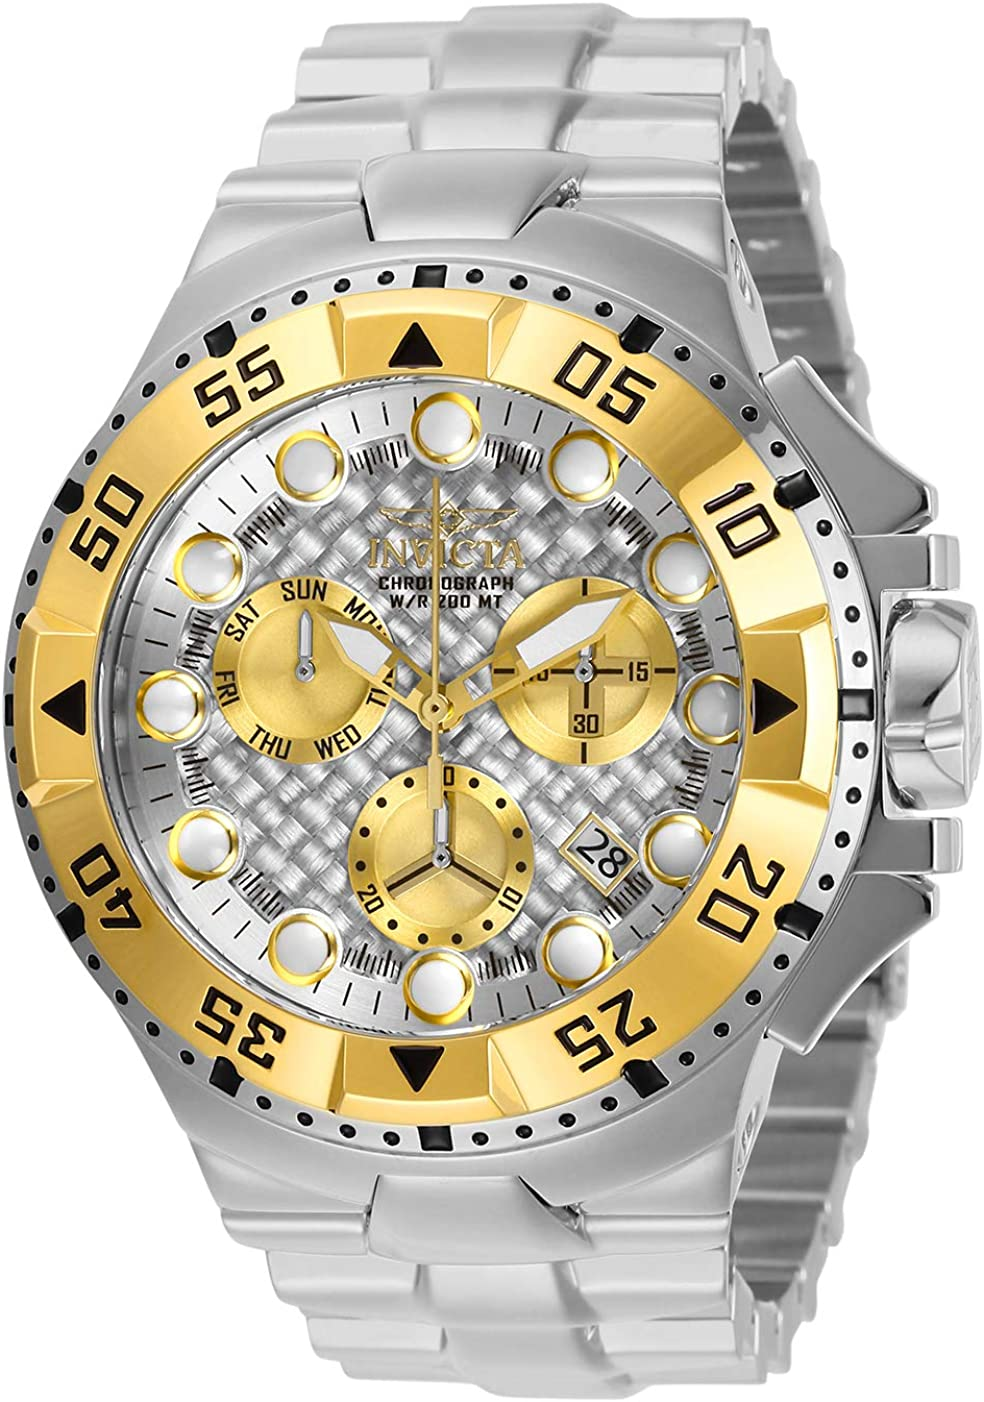 Invicta Men s Excursion Quartz Watch with Stainless Steel Strap, Silver, 30 Model 29724